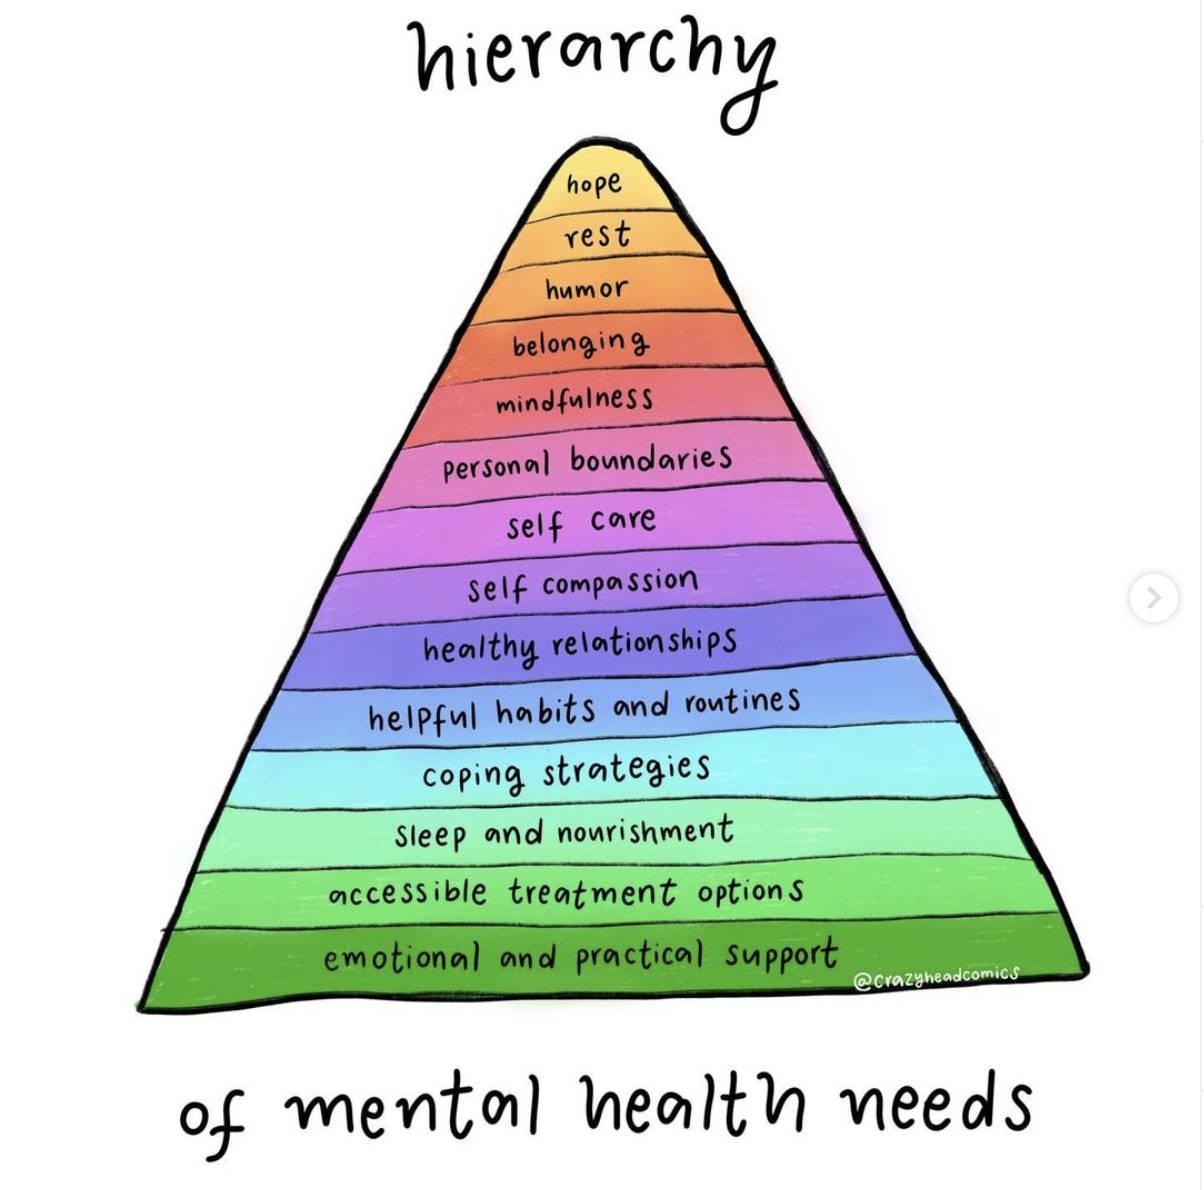 Hierarchy of mental health needs by @crazyheadcomics